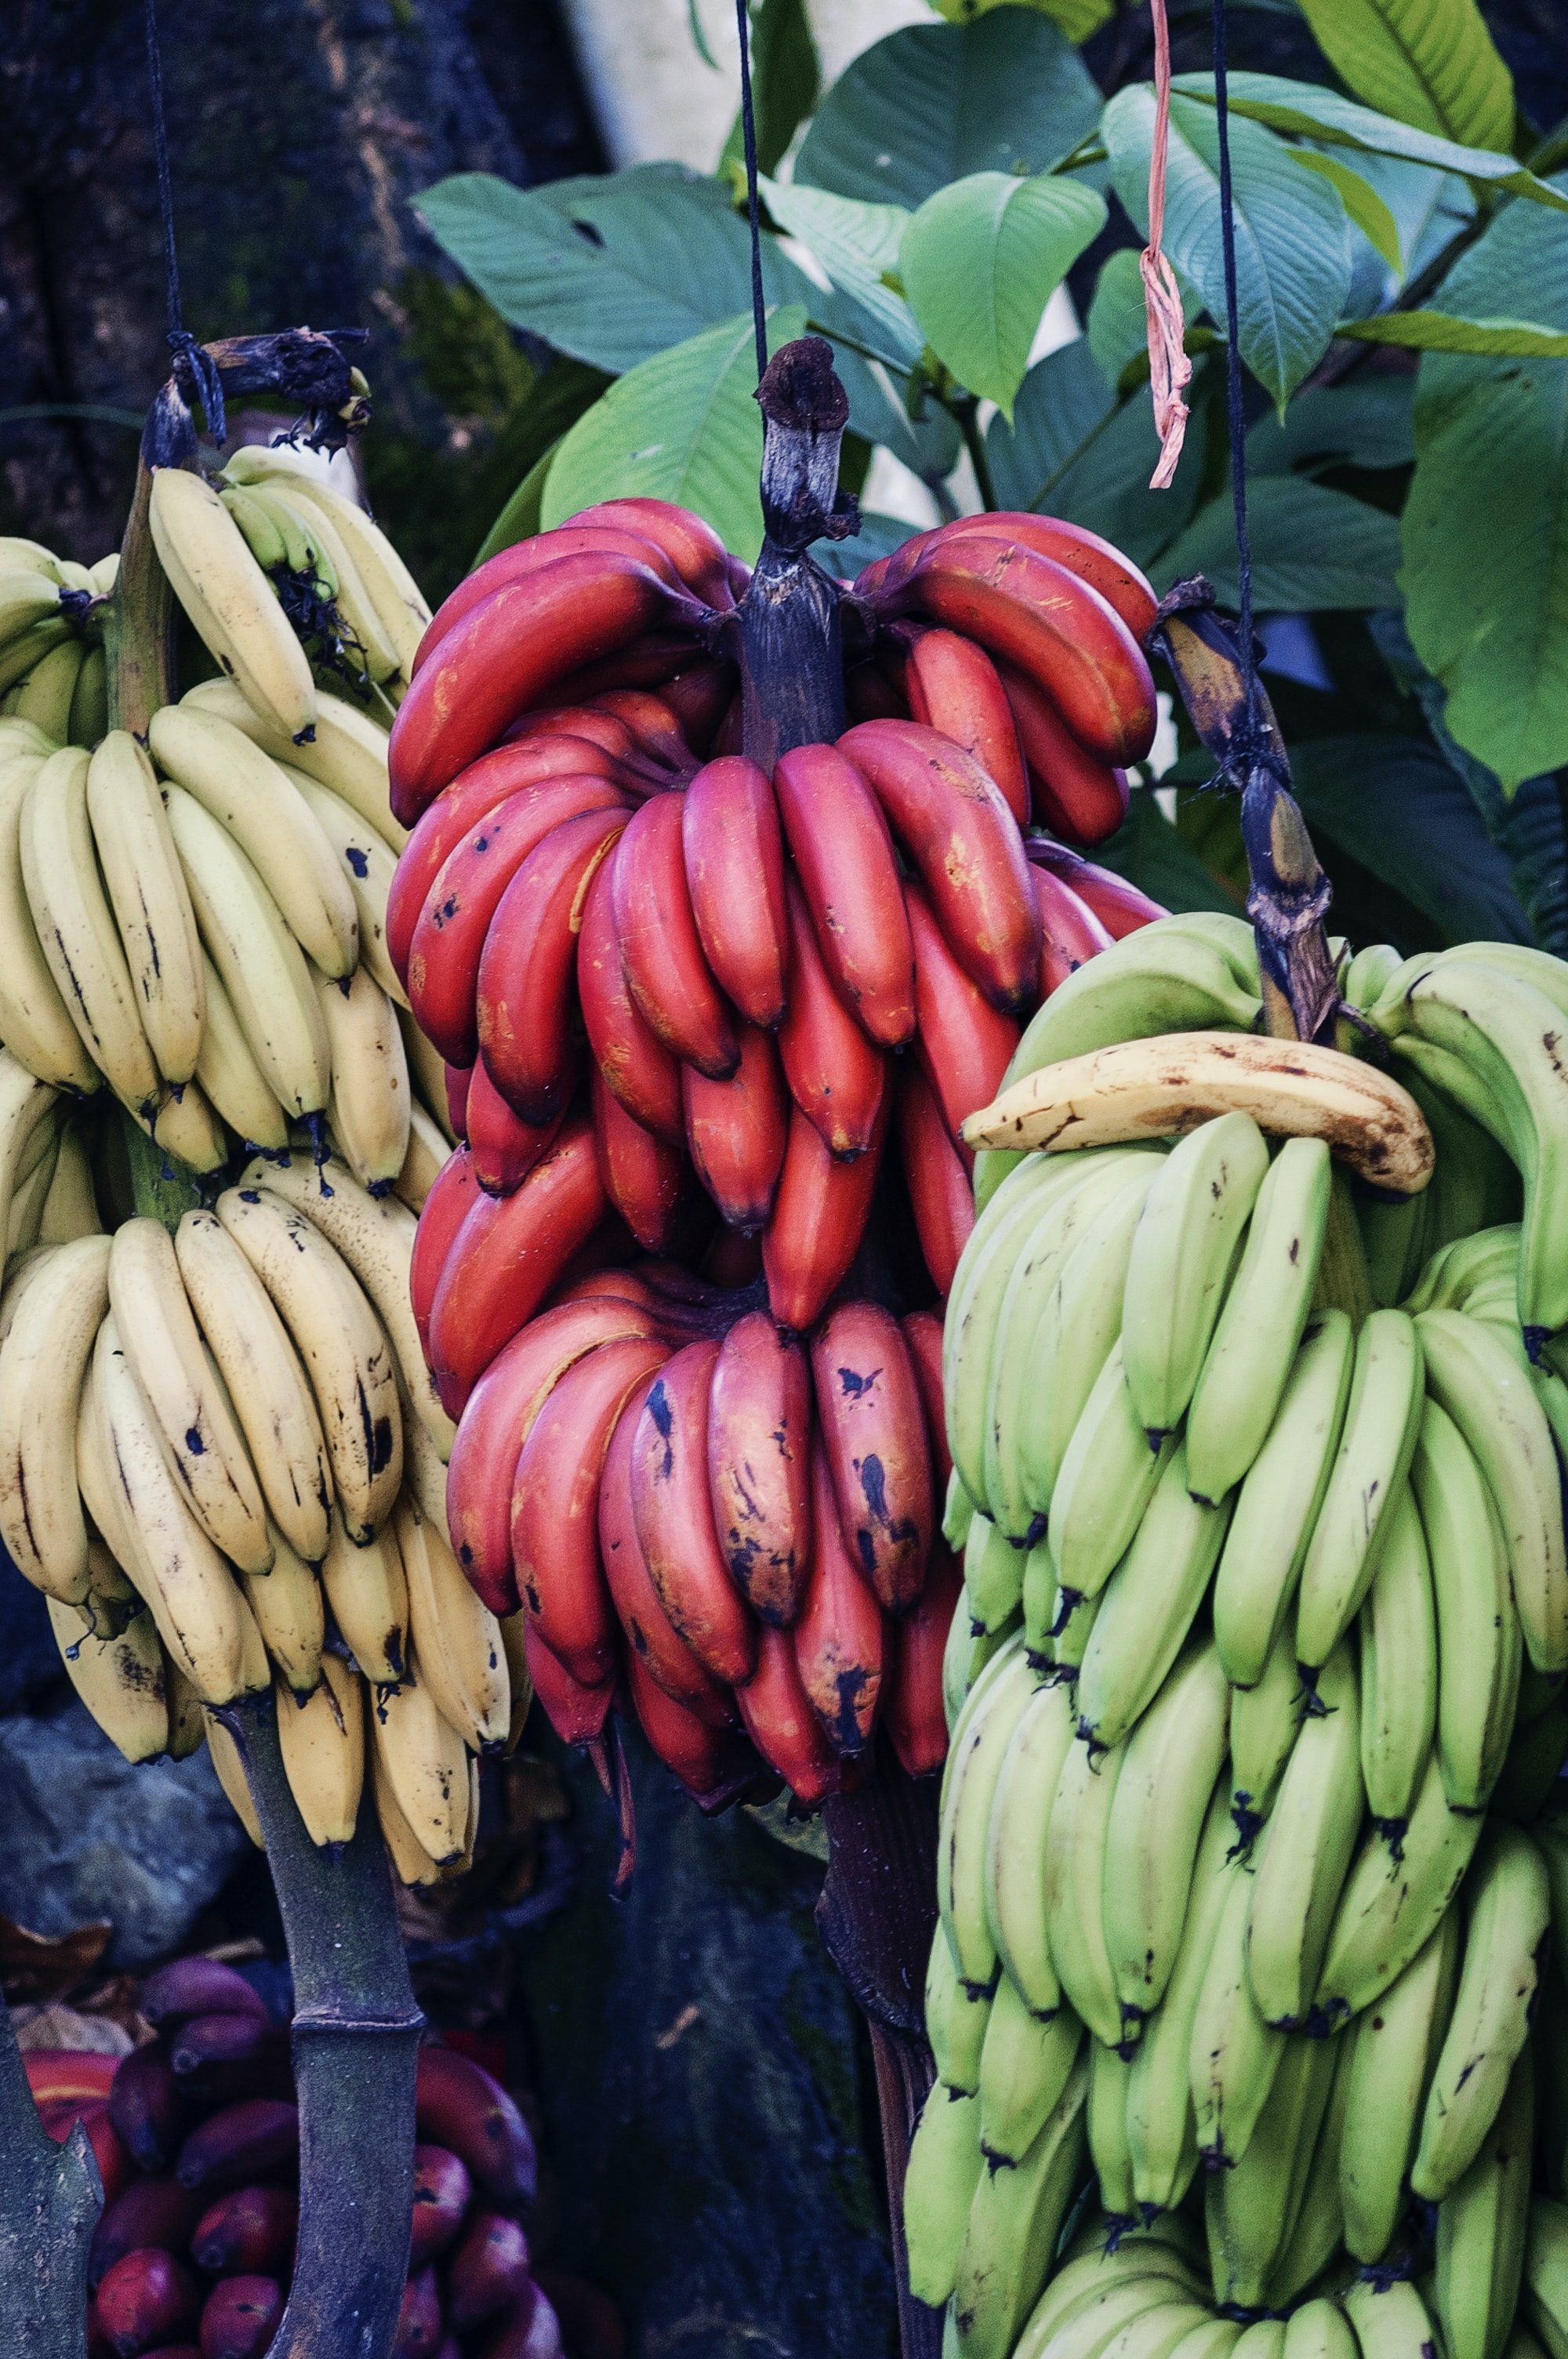 yellow, green, and red bananas hanging on tree